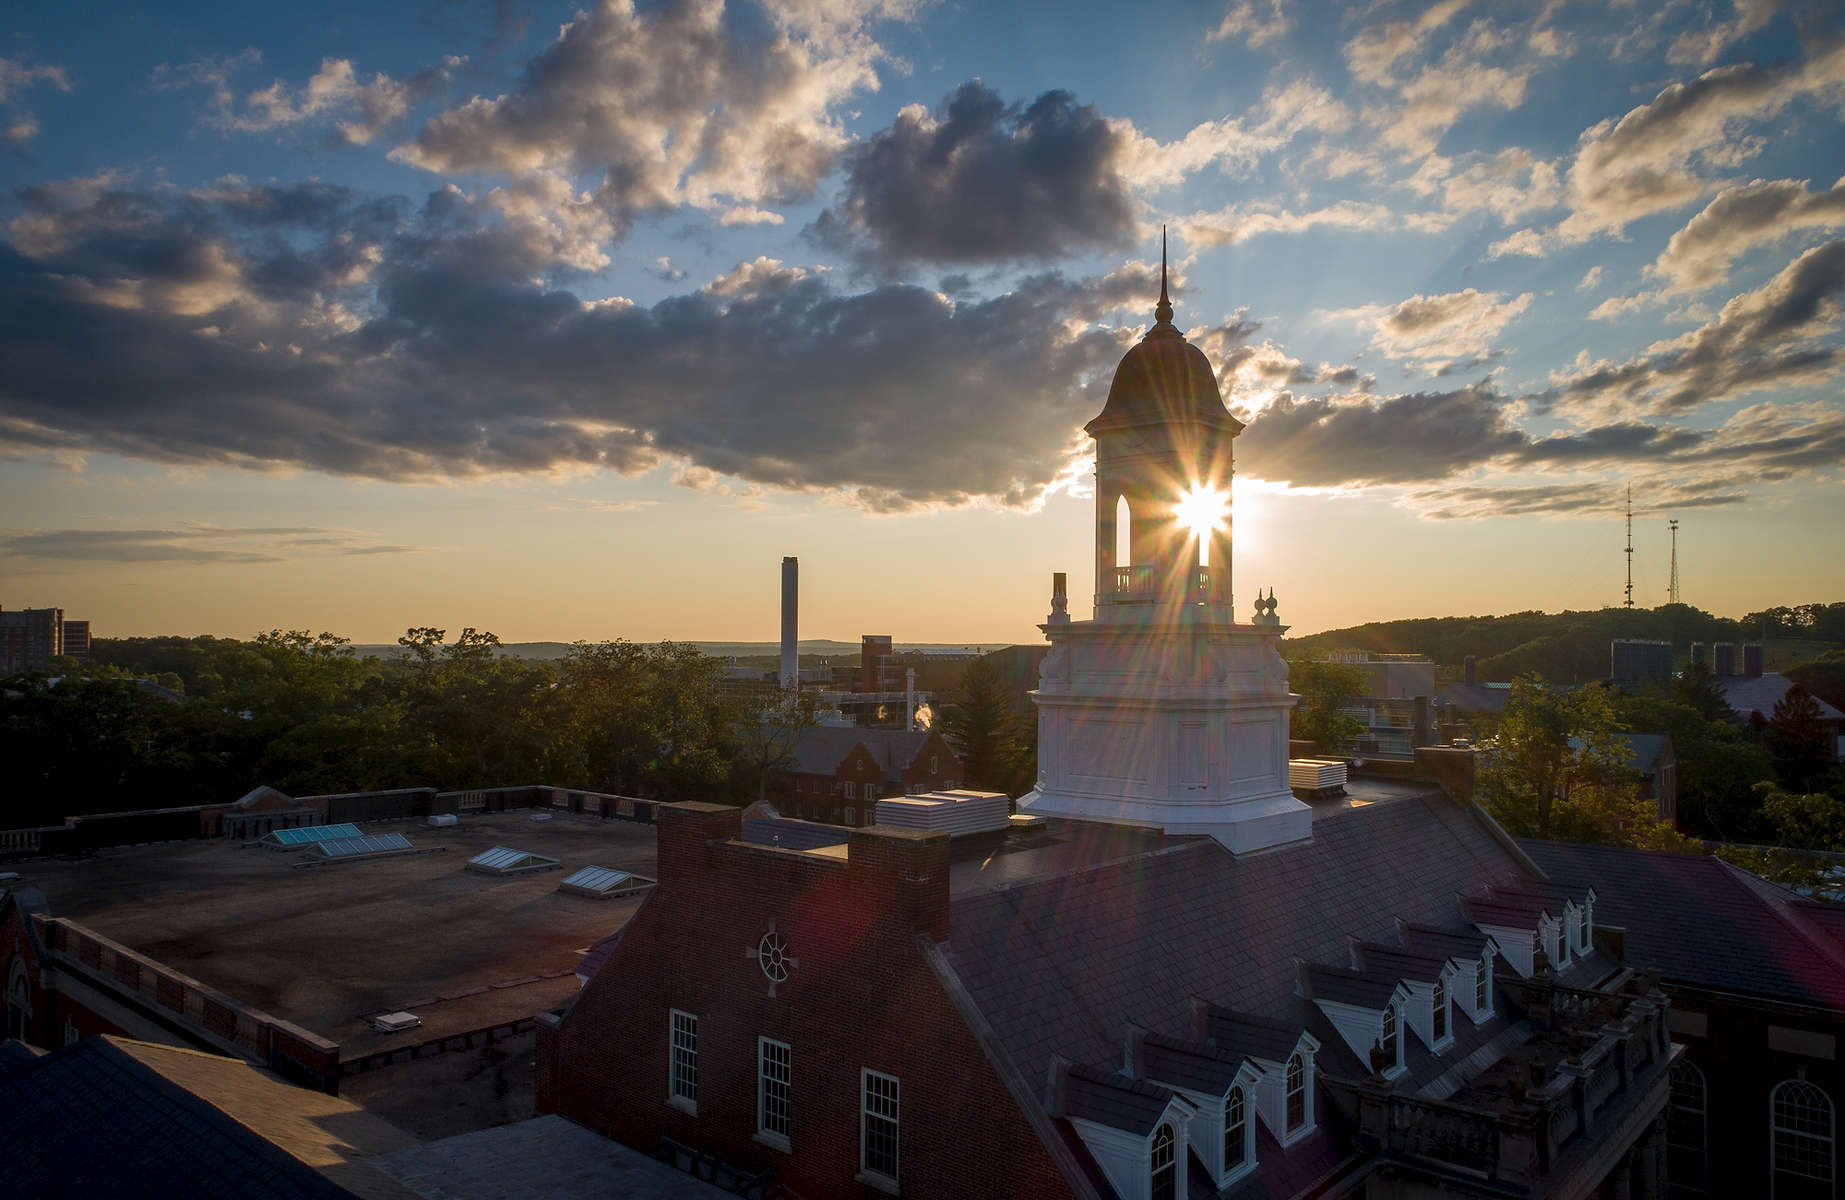 Sun sets behind Wilbur Cross Wednesday, July 24, 2019 in Storrs.